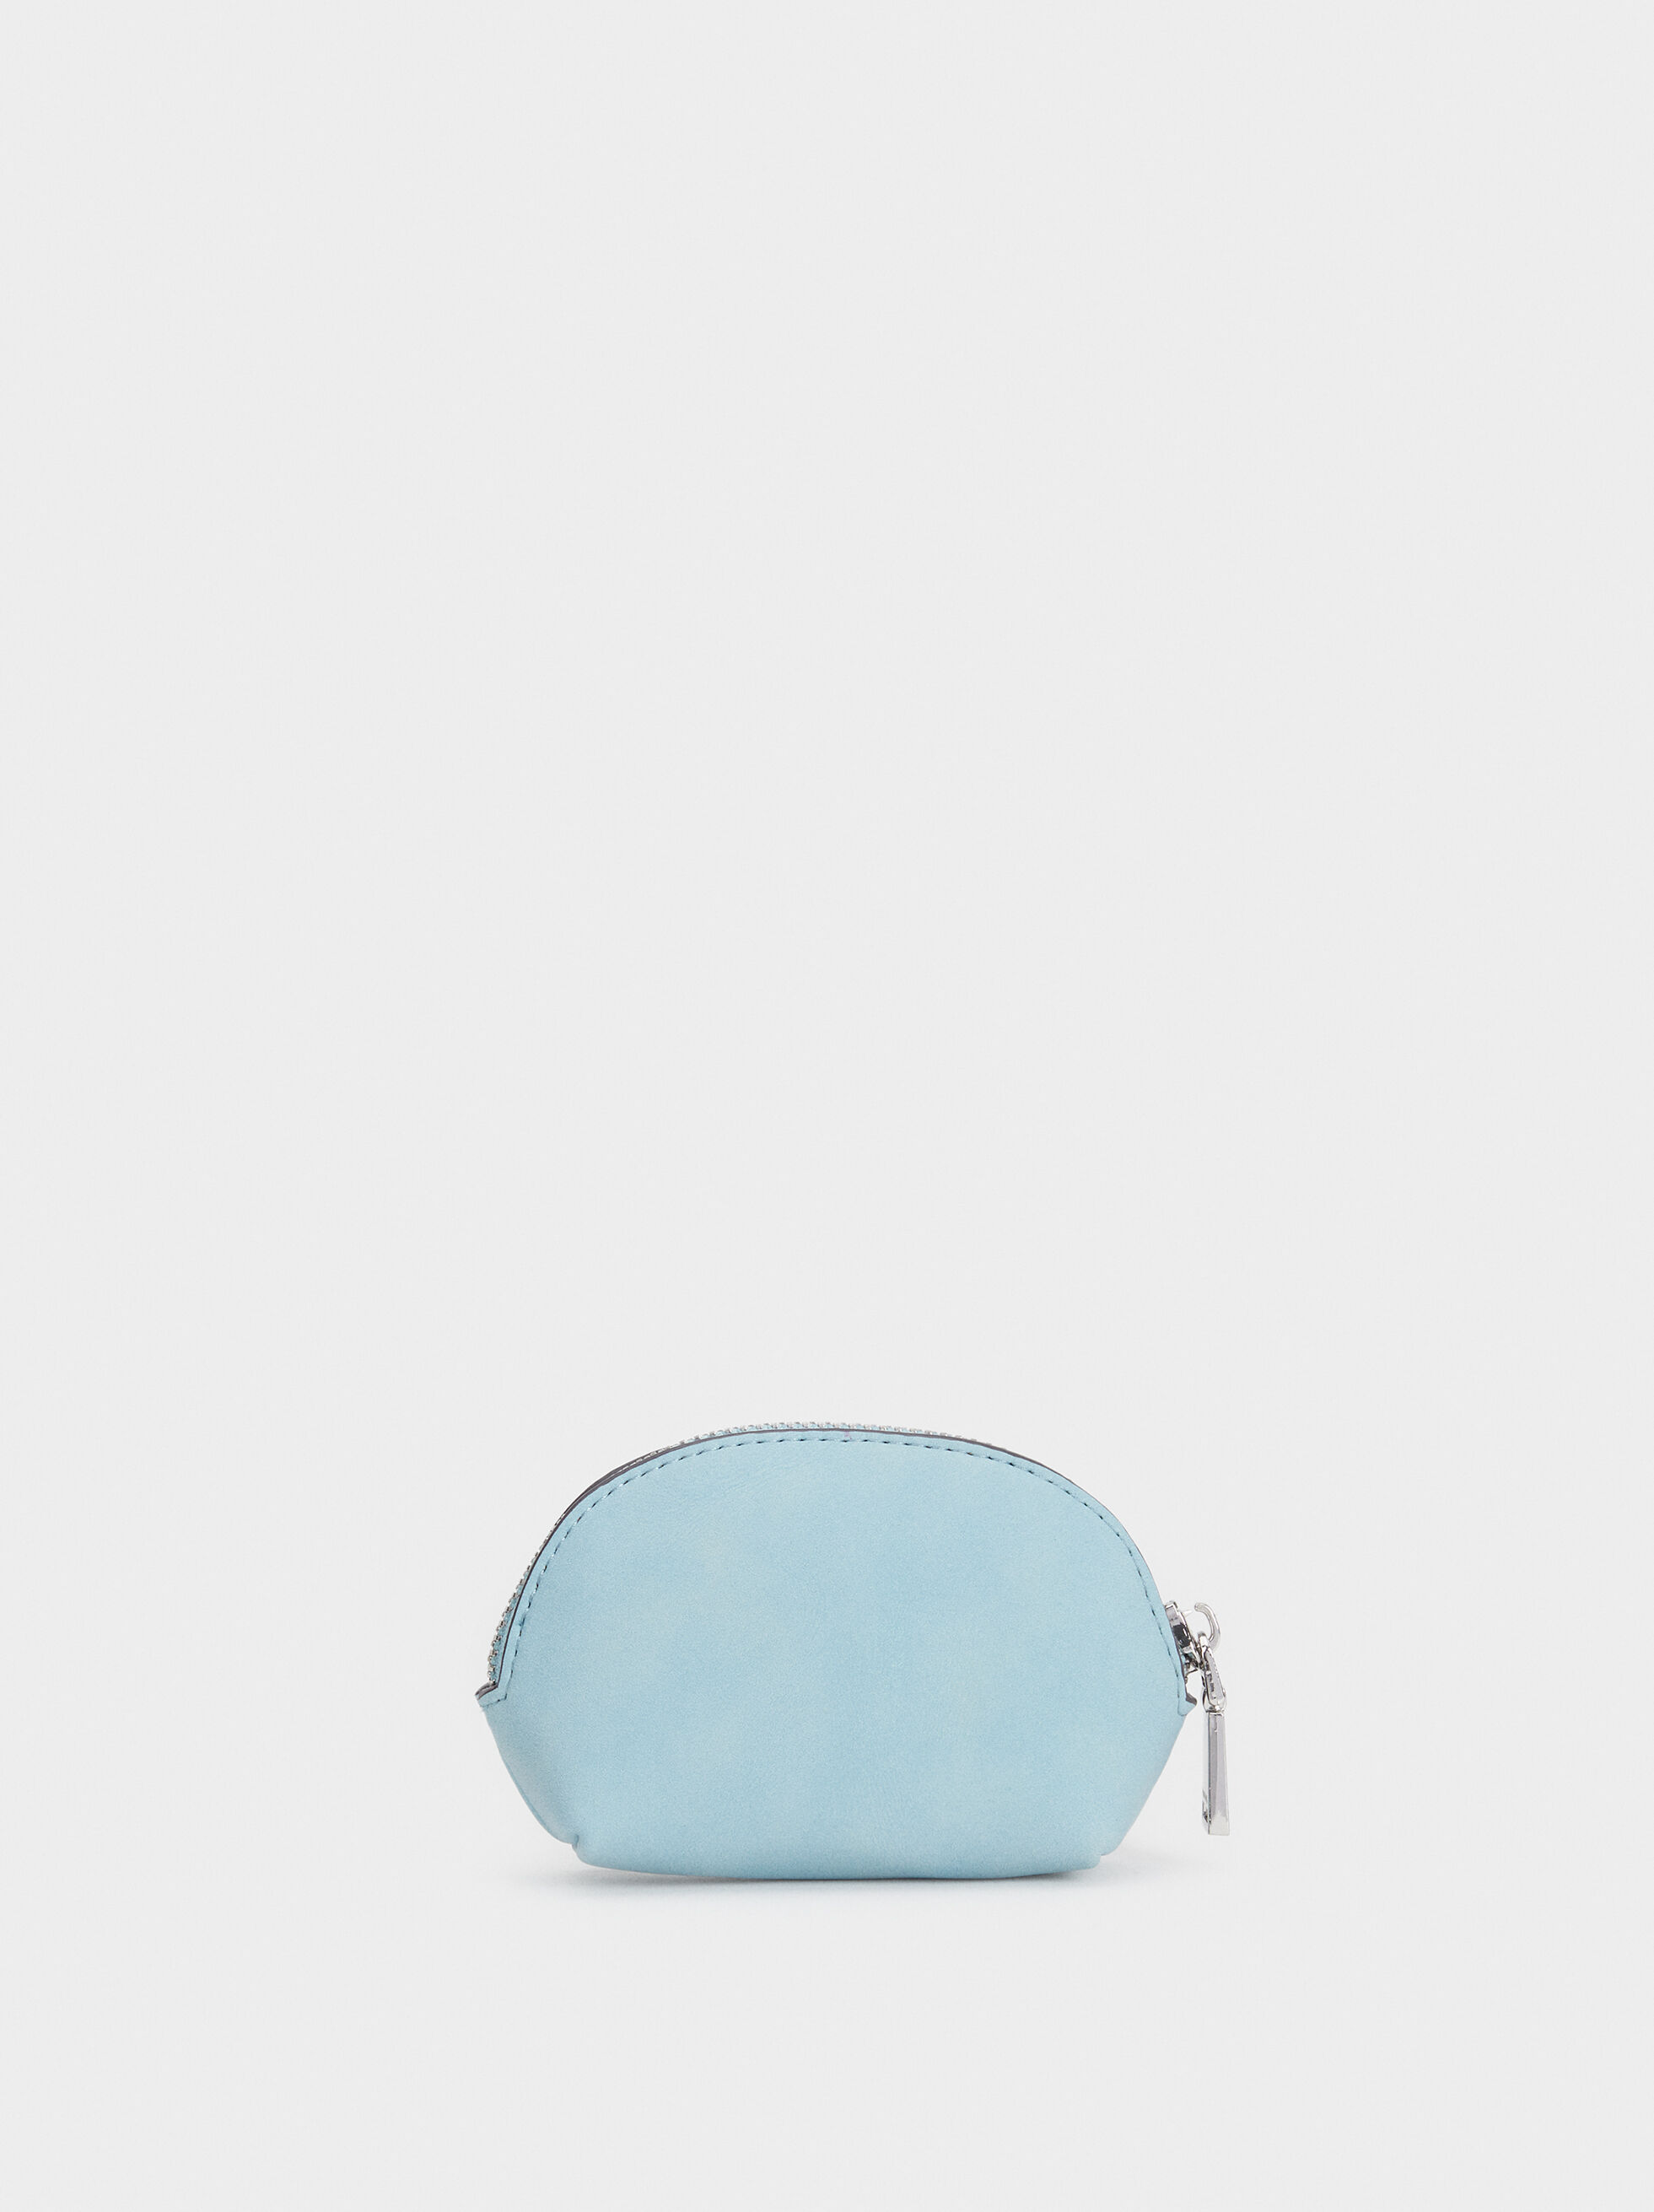 Small Suede Texture Purse, Blue, hi-res